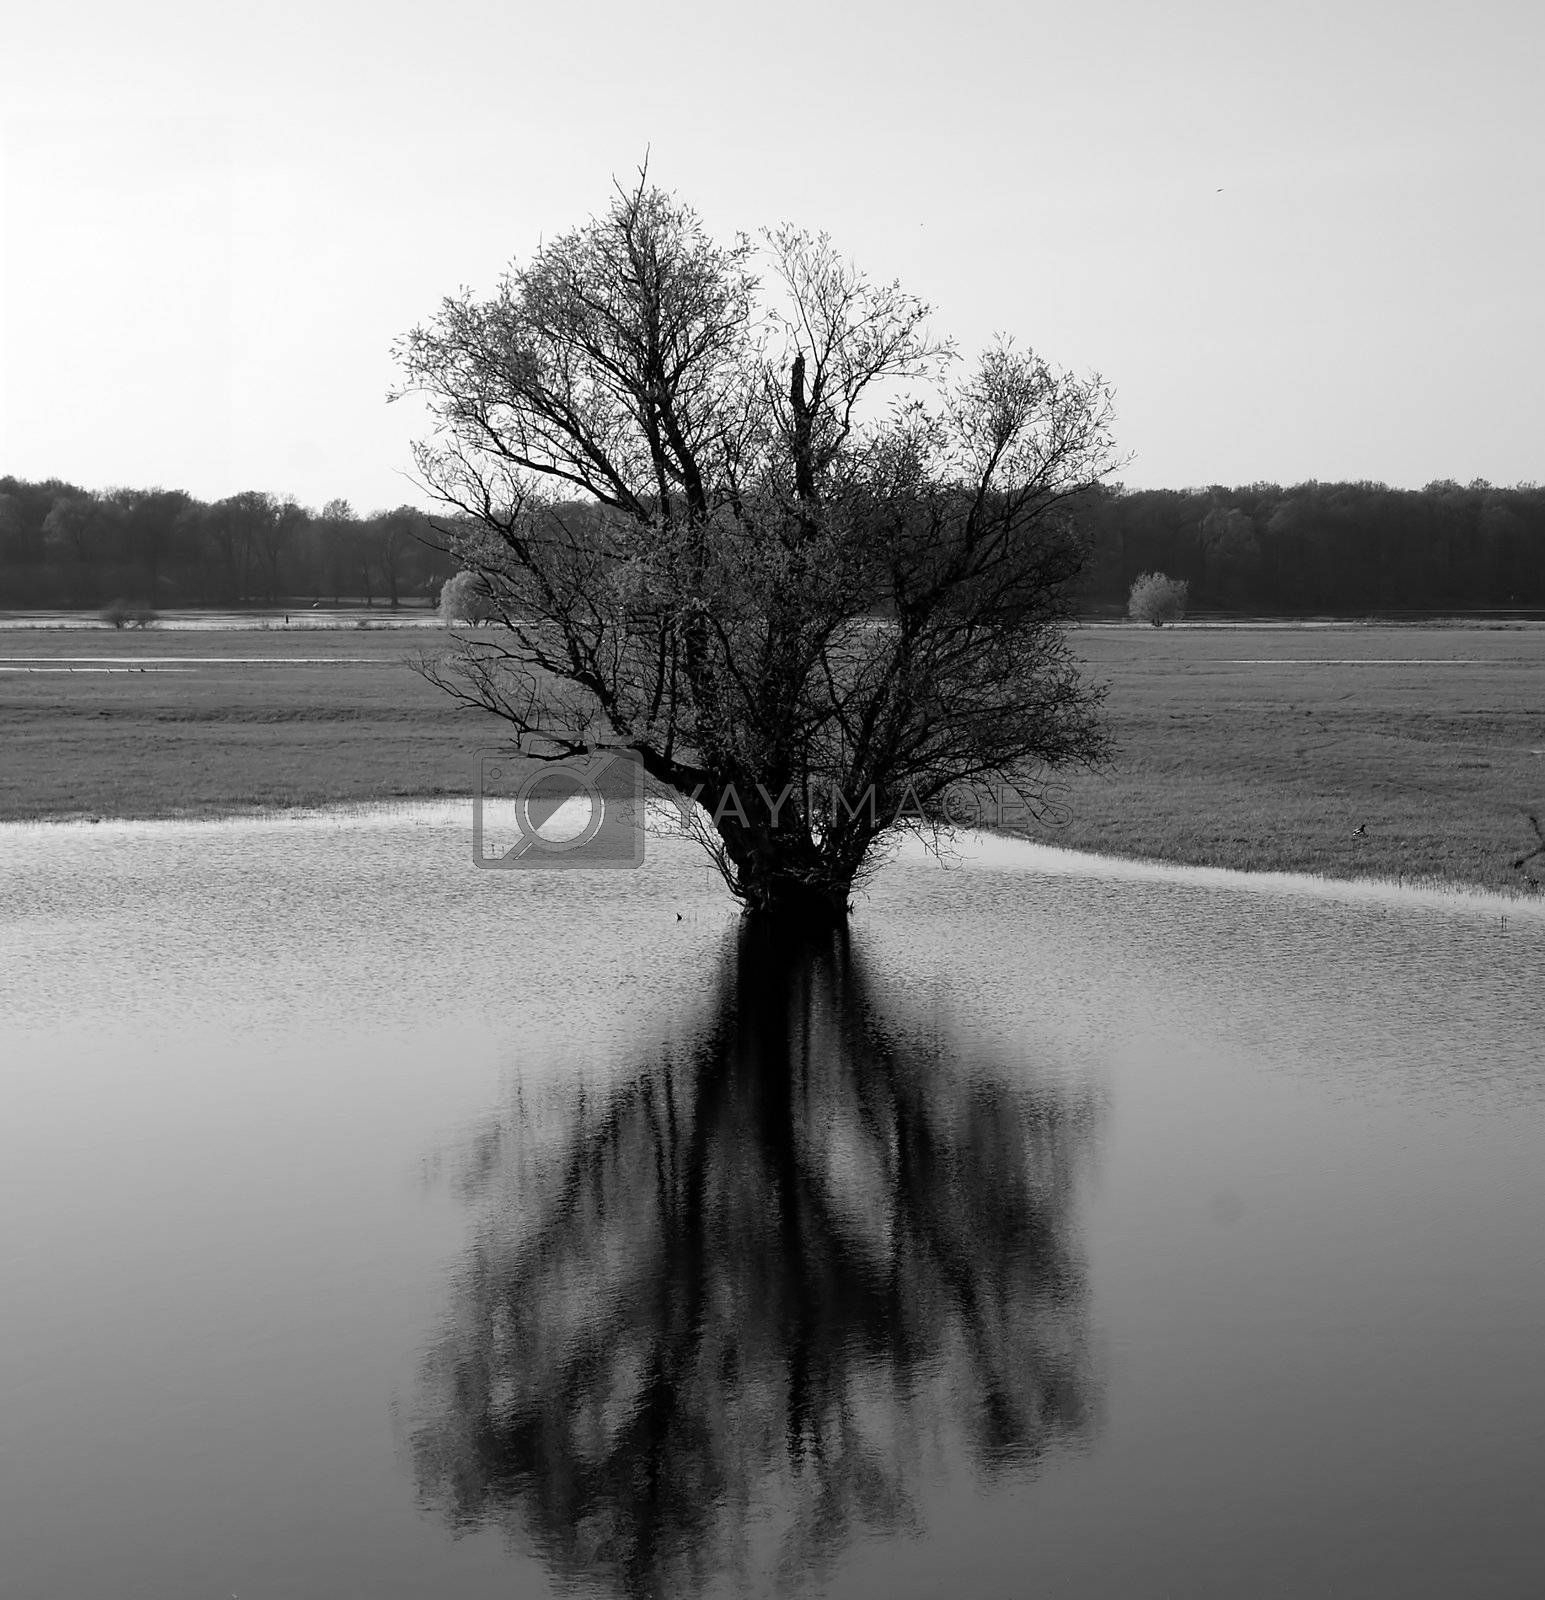 Tree reflection on the water surface of a pond in the nature protection area Elbe Valley.